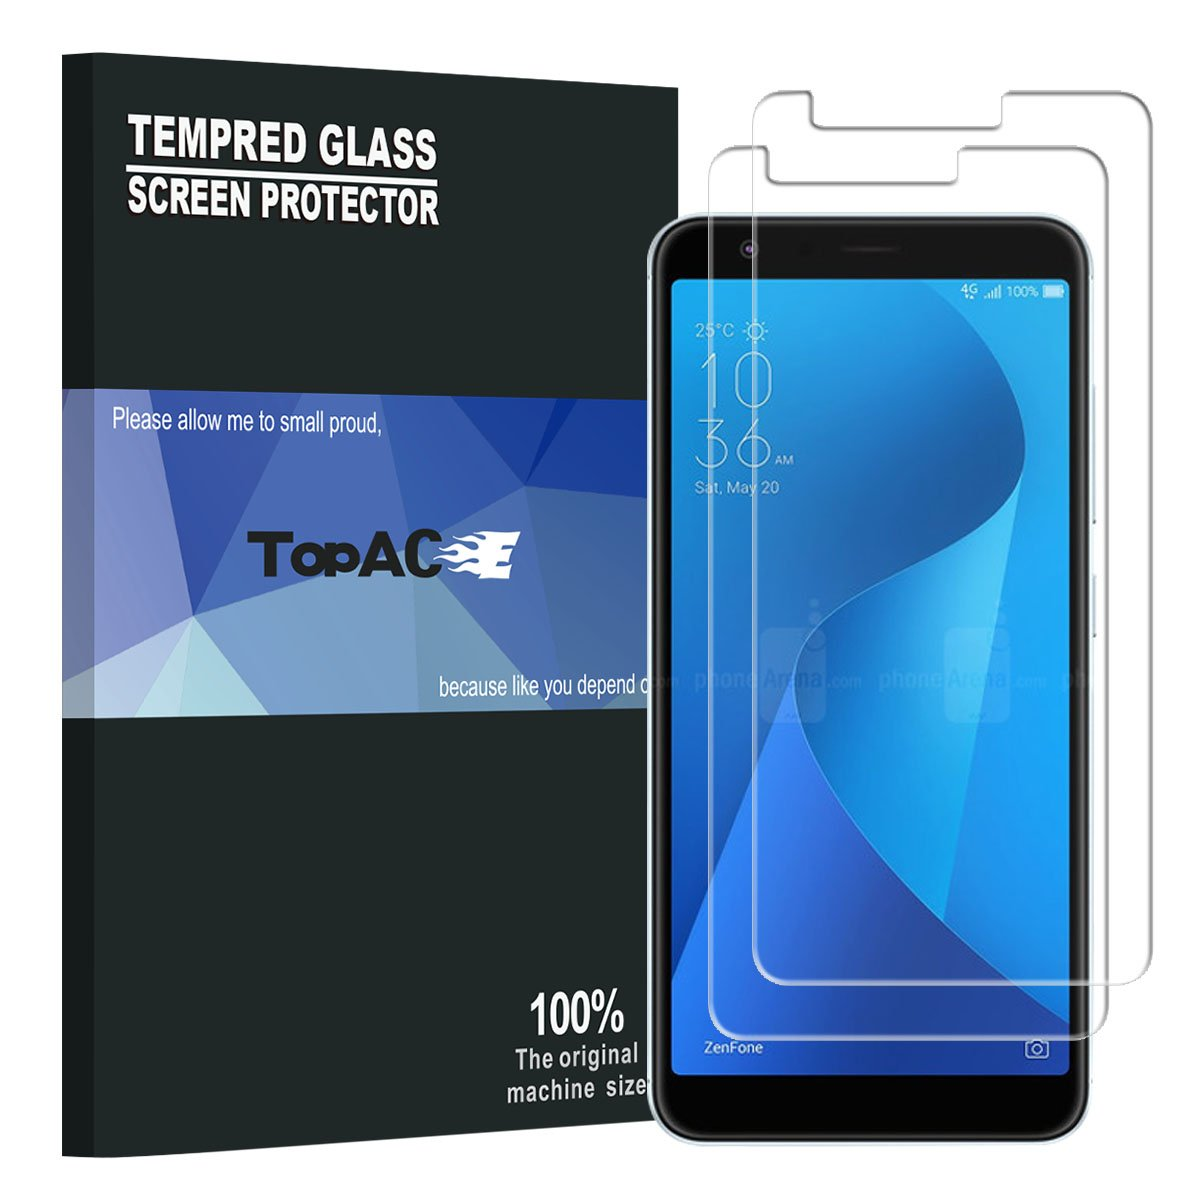 ASUS ZenFone Max Plus ZB570TL Screen Protector, TopACE Premium Quality Tempered Glass 0.3mm Film Asus ZenFone Max Plus (M1) ZB570TL (2 Pack) TopACE.US 4335018550